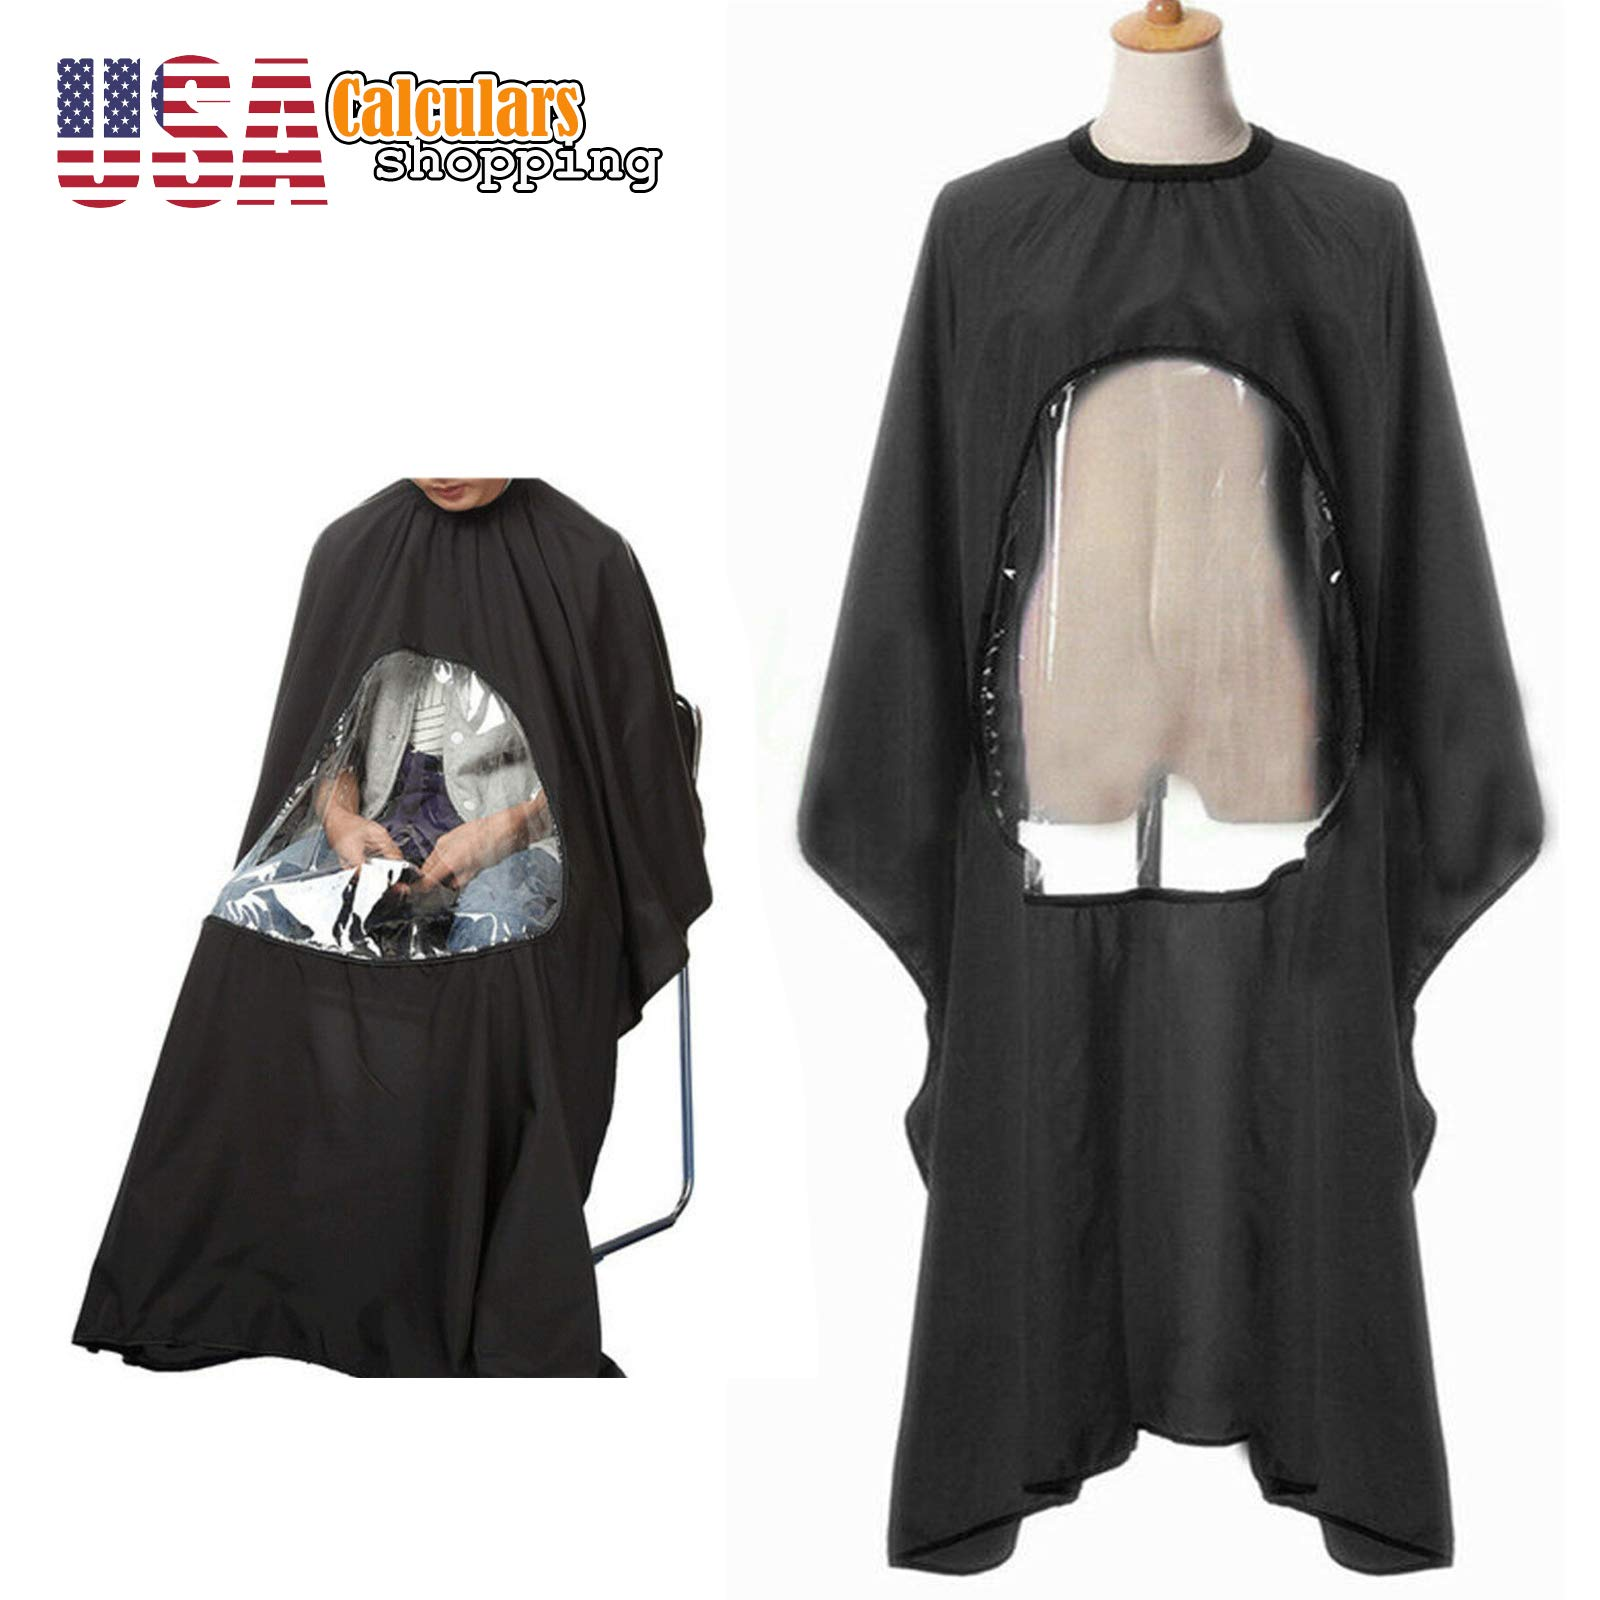 US Seller Salon Barber Hair Cutting Apron With Viewing Window Hairdresser Gown Cape by Calculars